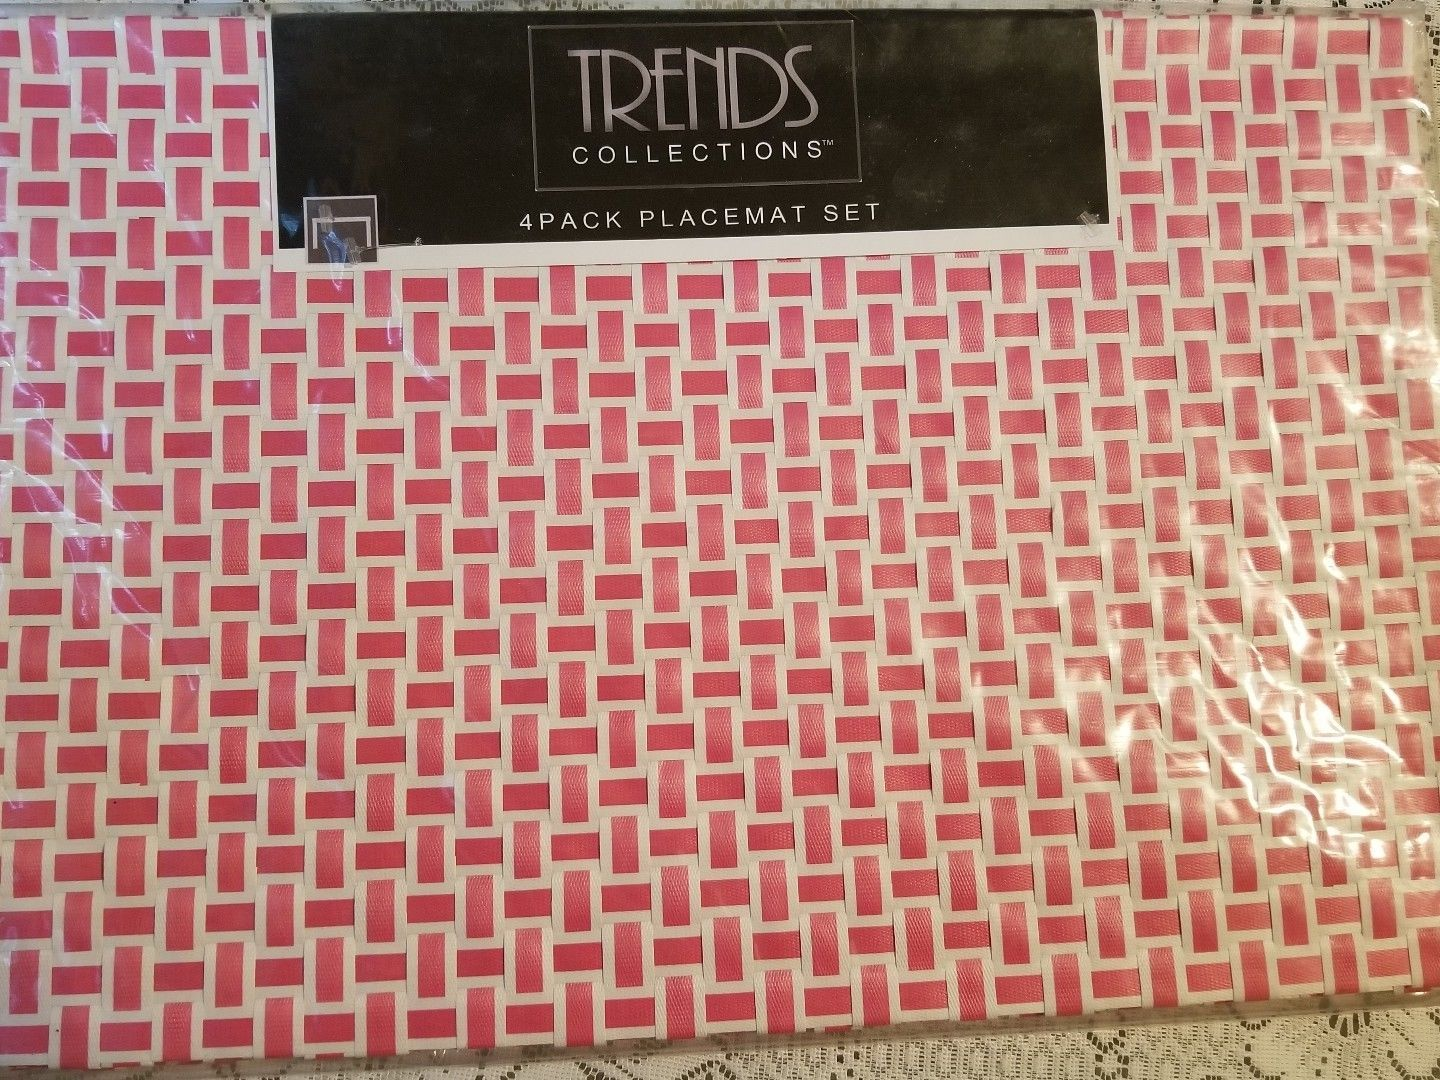 "Primary image for Trends Collections 13""x19"" 4-Pack Placemat Set basket weave pink Christmas gift"